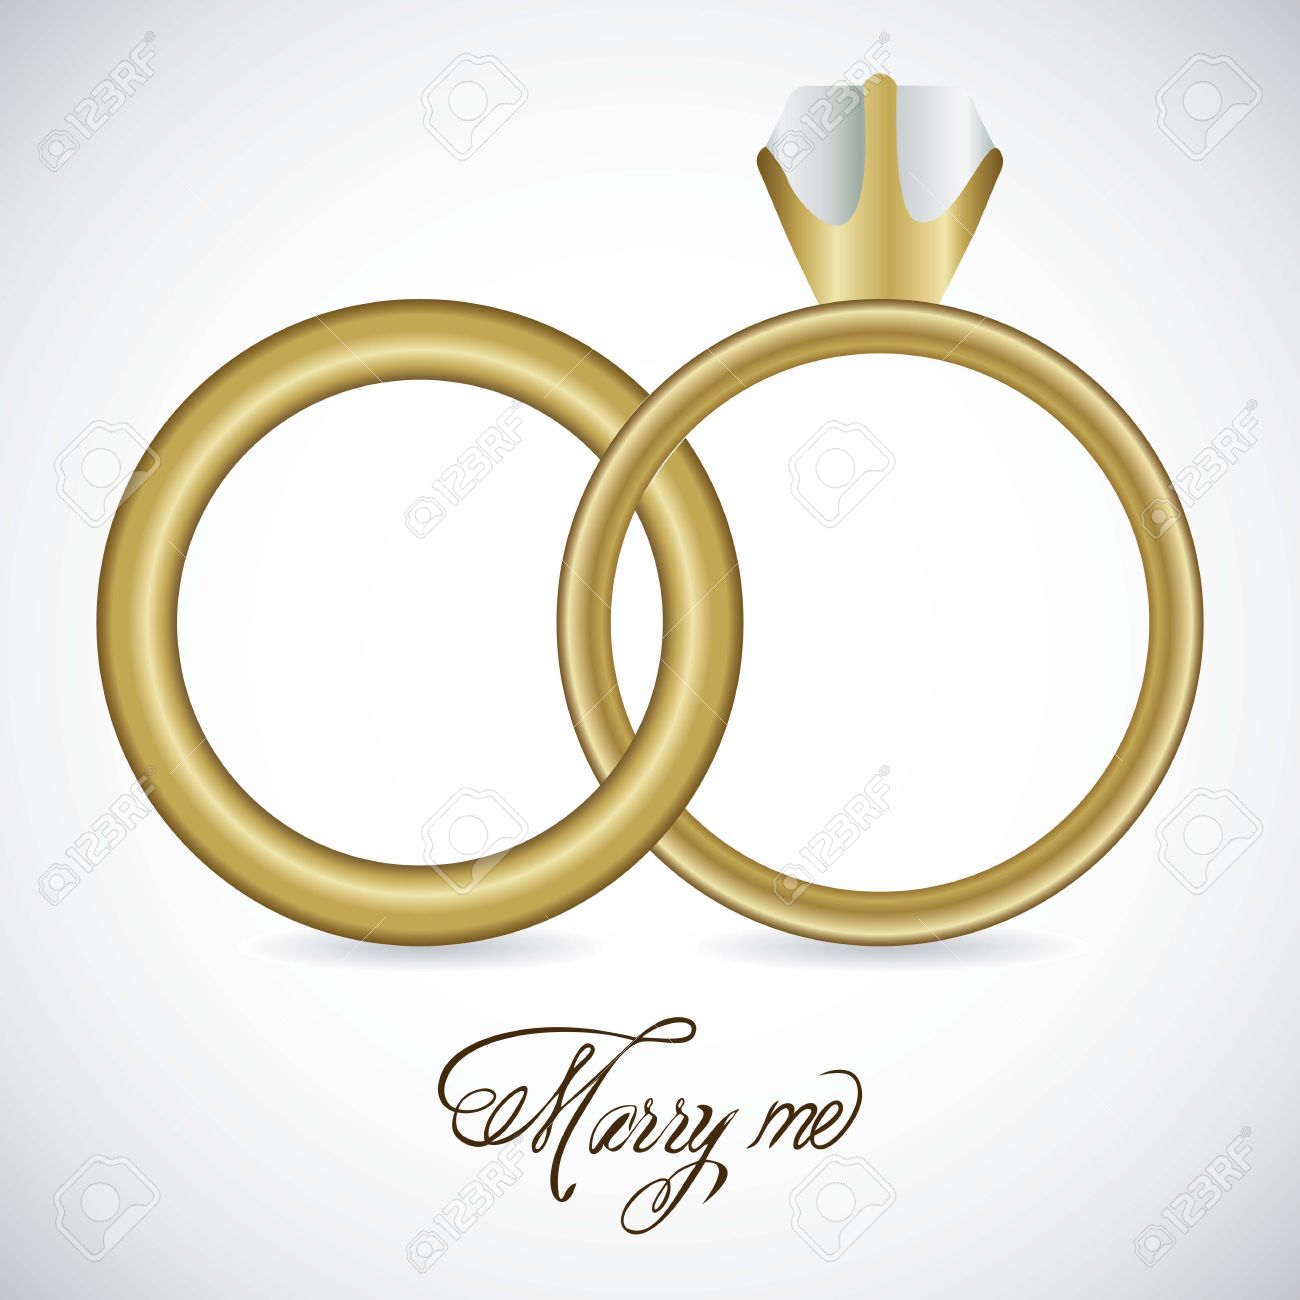 Cheap dress rings vector